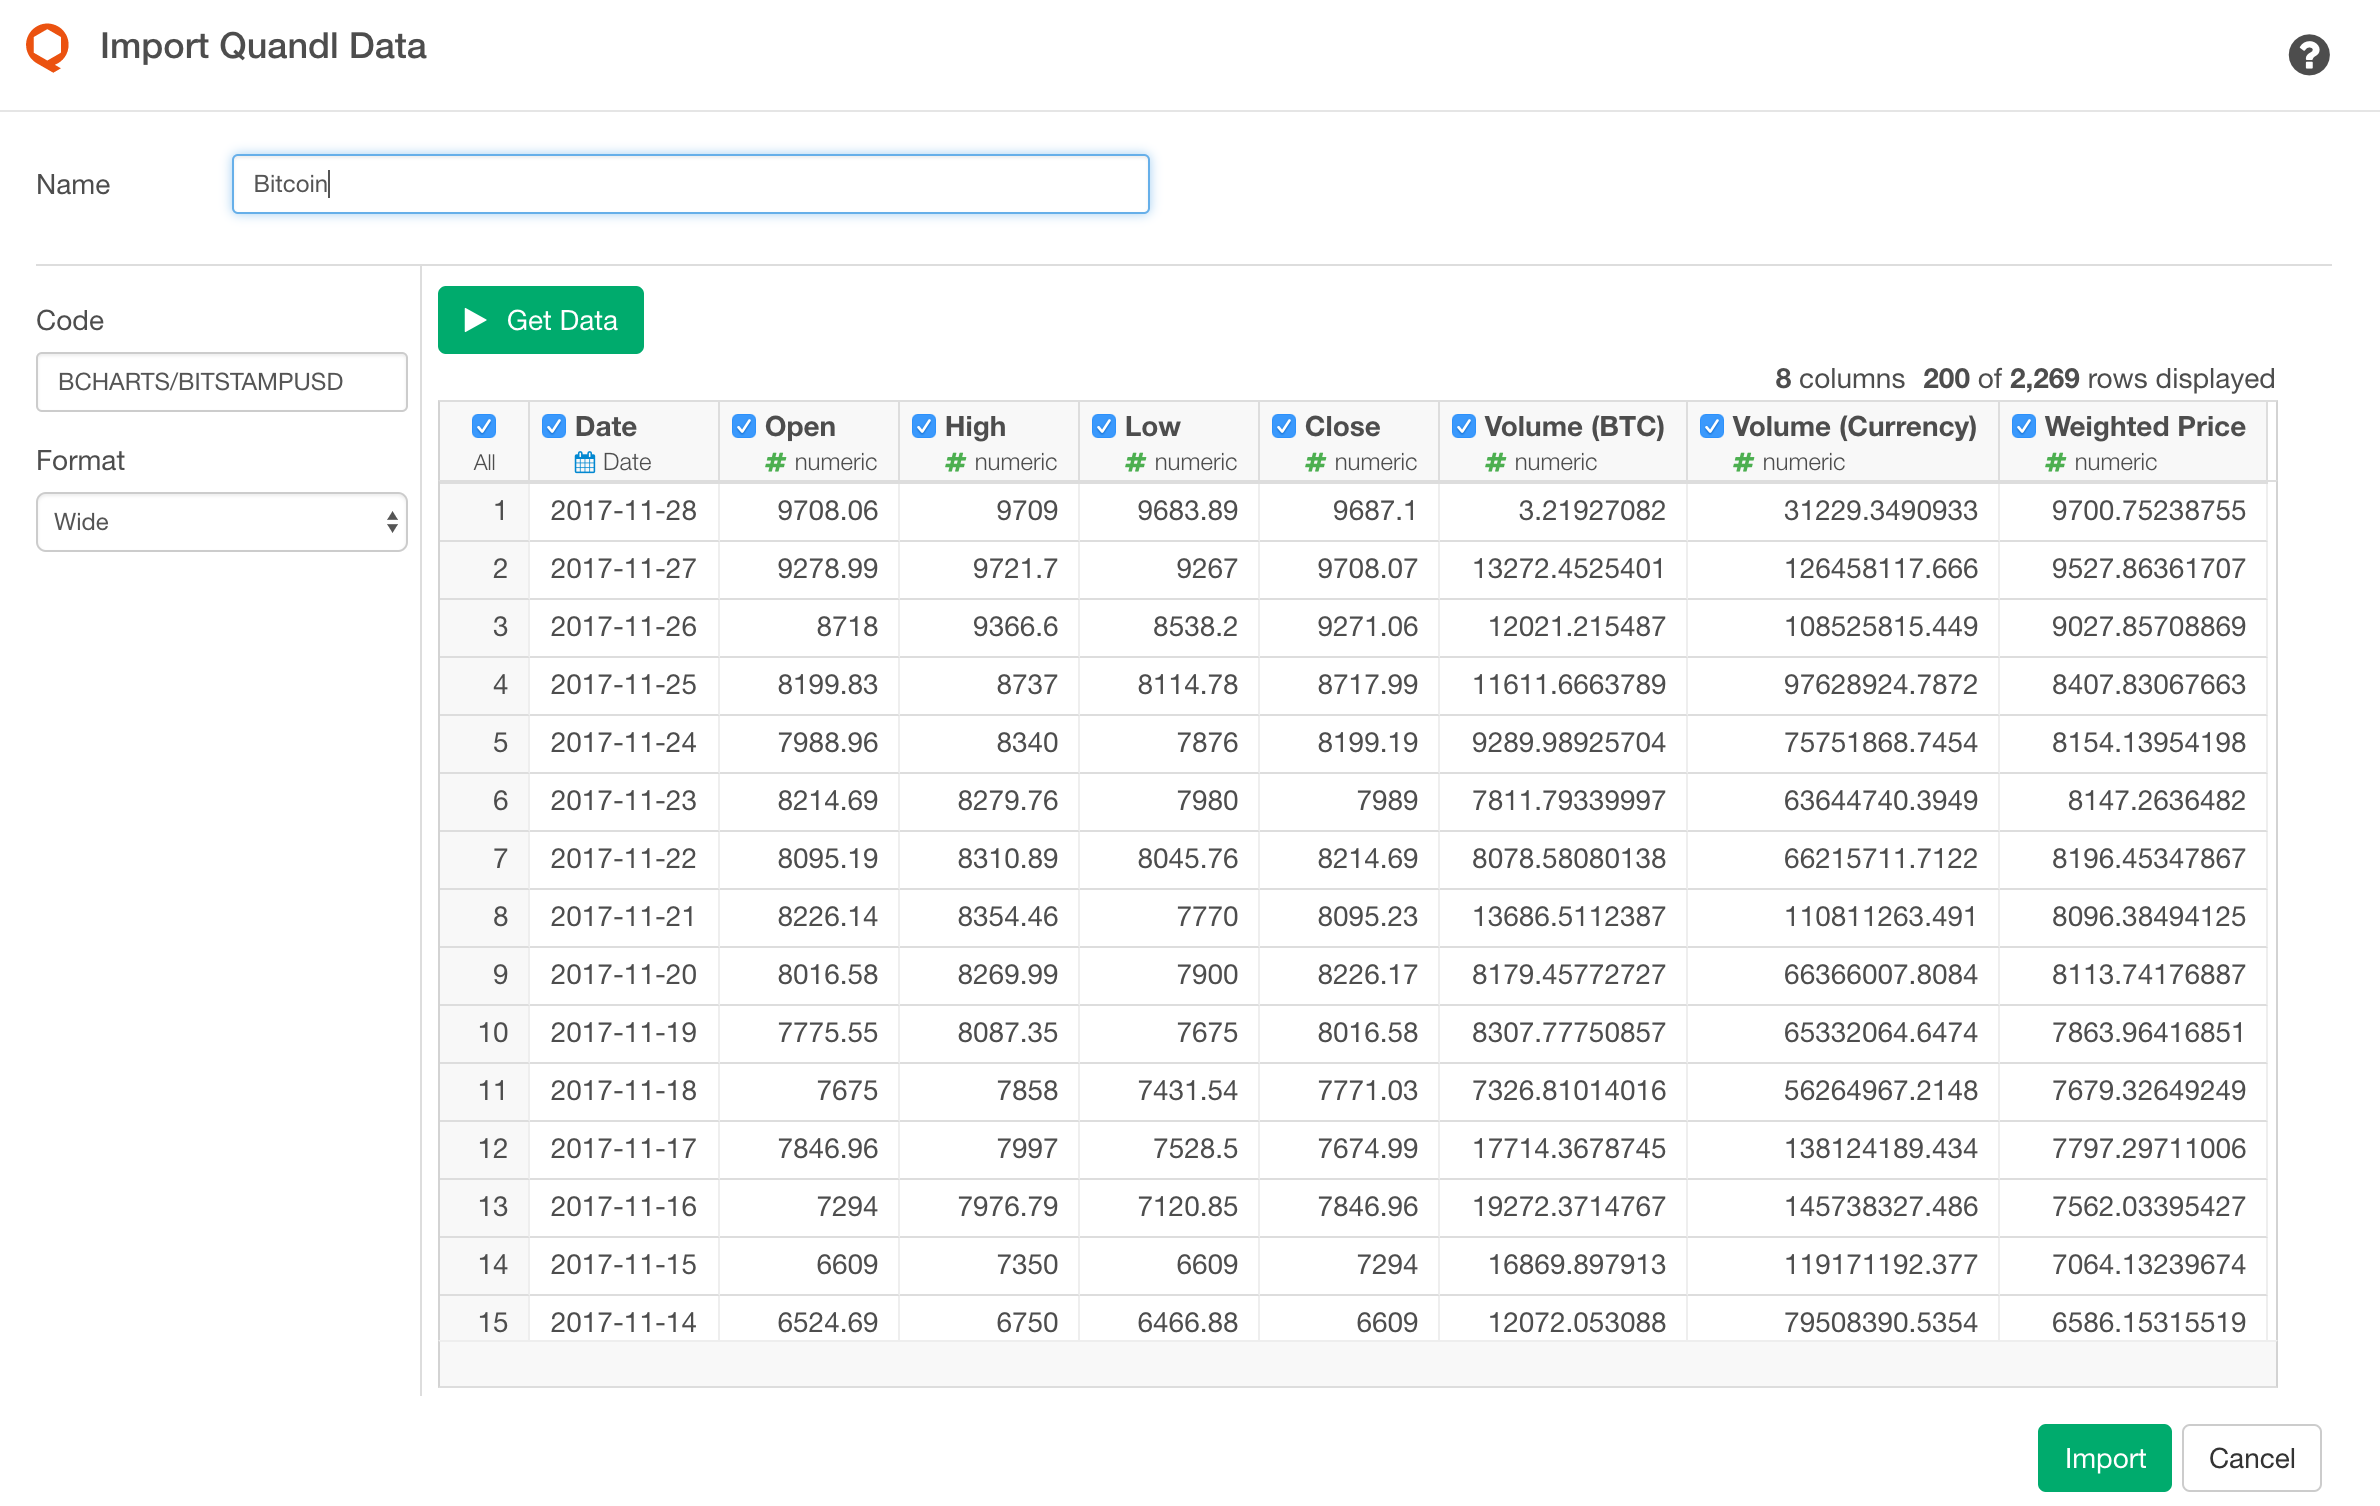 Getting Bitcoin Data and Visualizing in 3 Steps - learn data